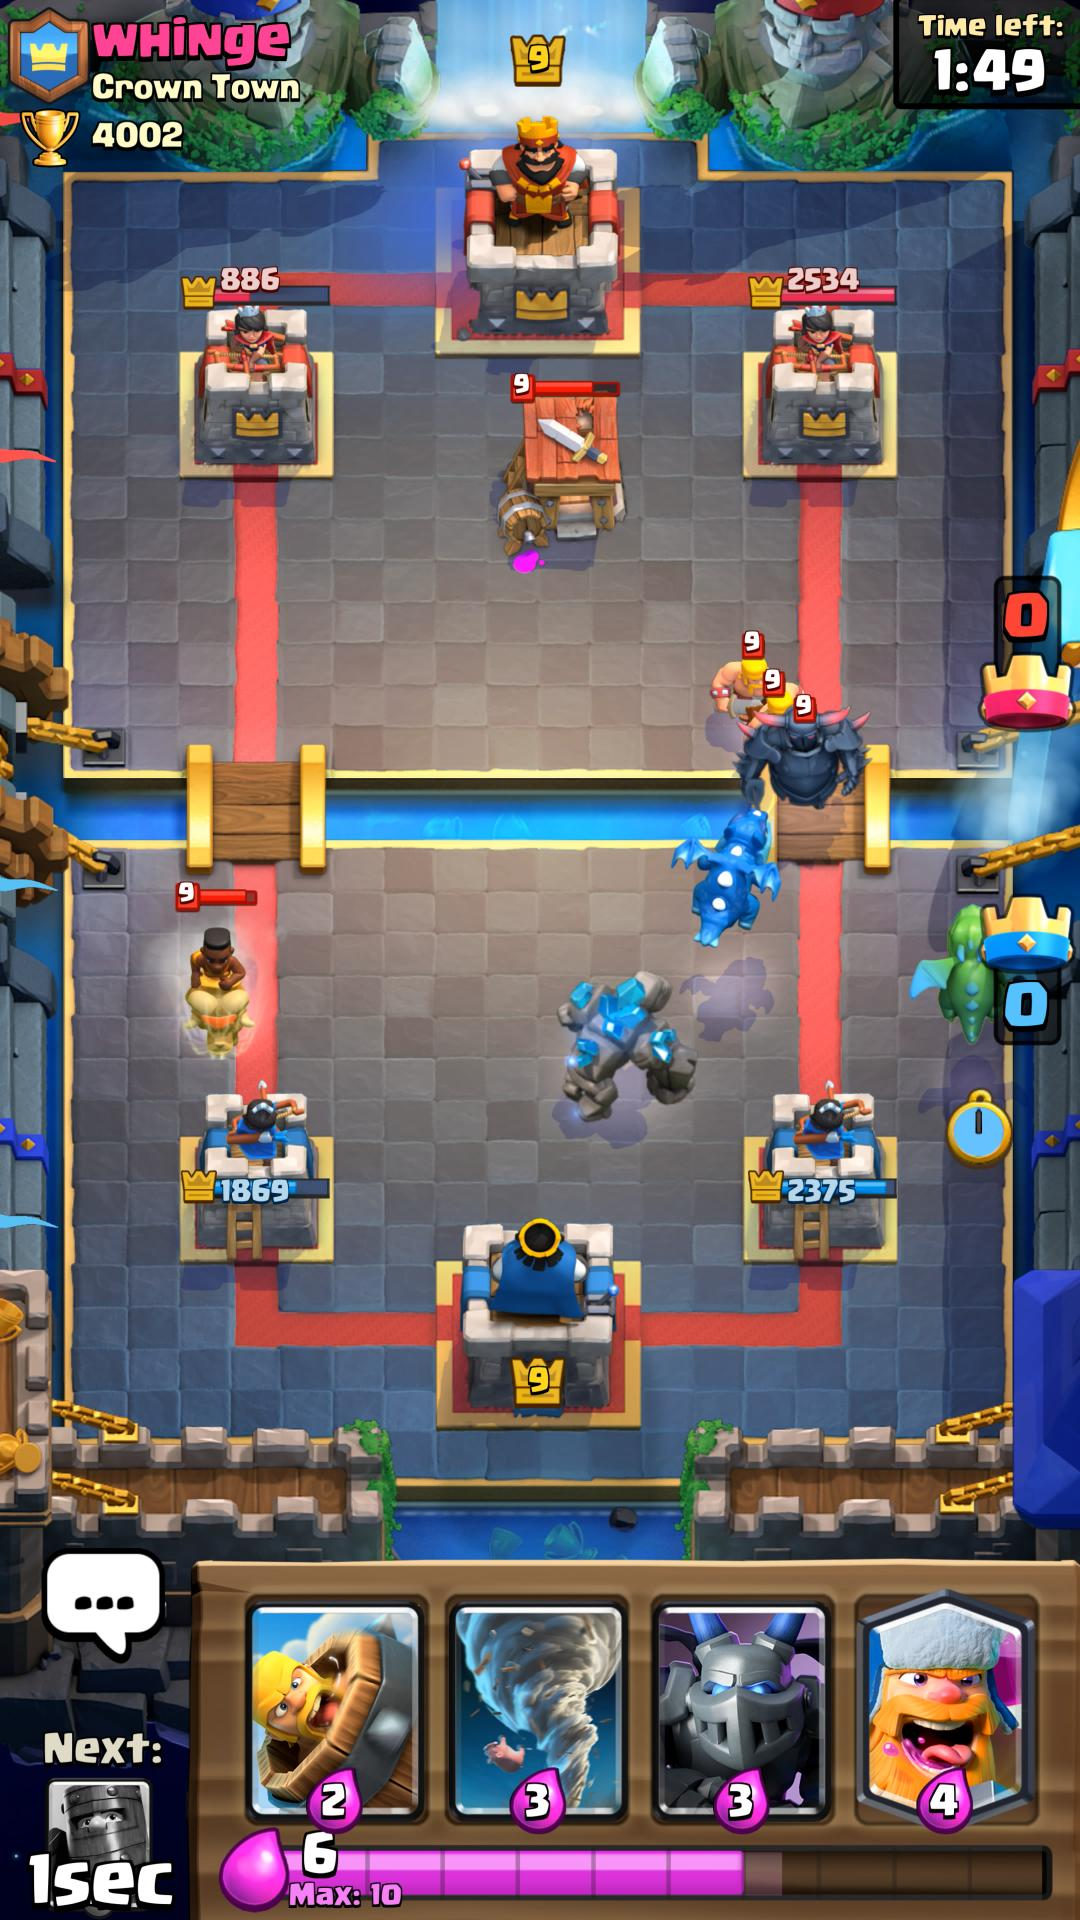 Clash Royale real time strategy card game from Supercell APK 3.2.1 ...